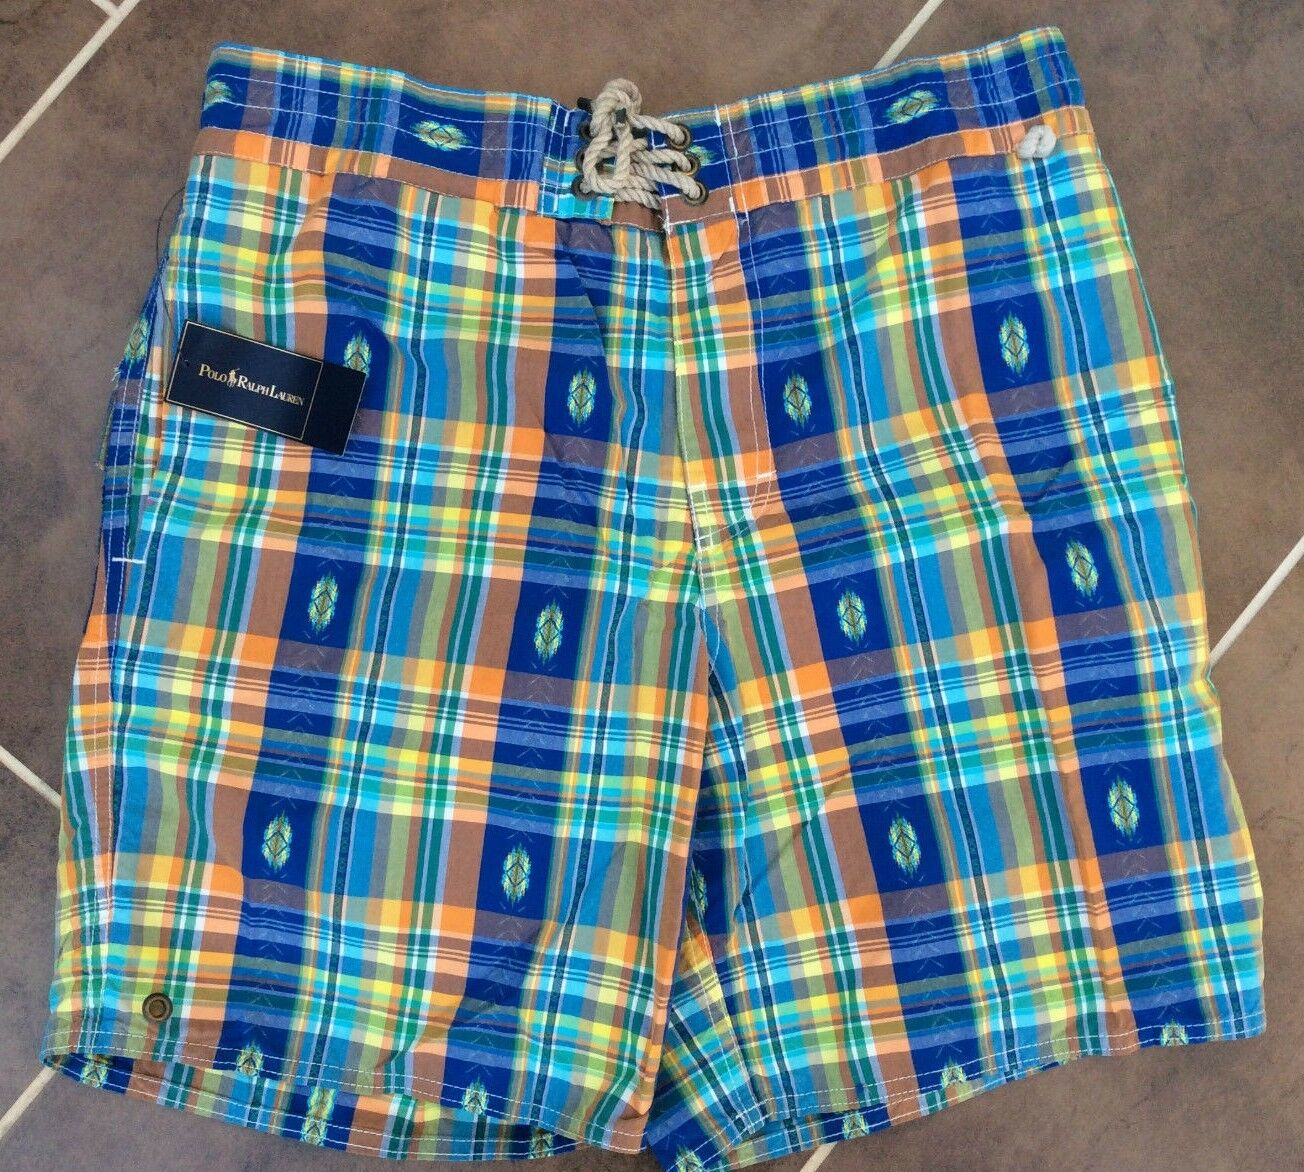 POLO RALPH LAUREN PLAID SANIBEL SWIM SHORTS BNWT SIZE M   L (34 -36 )